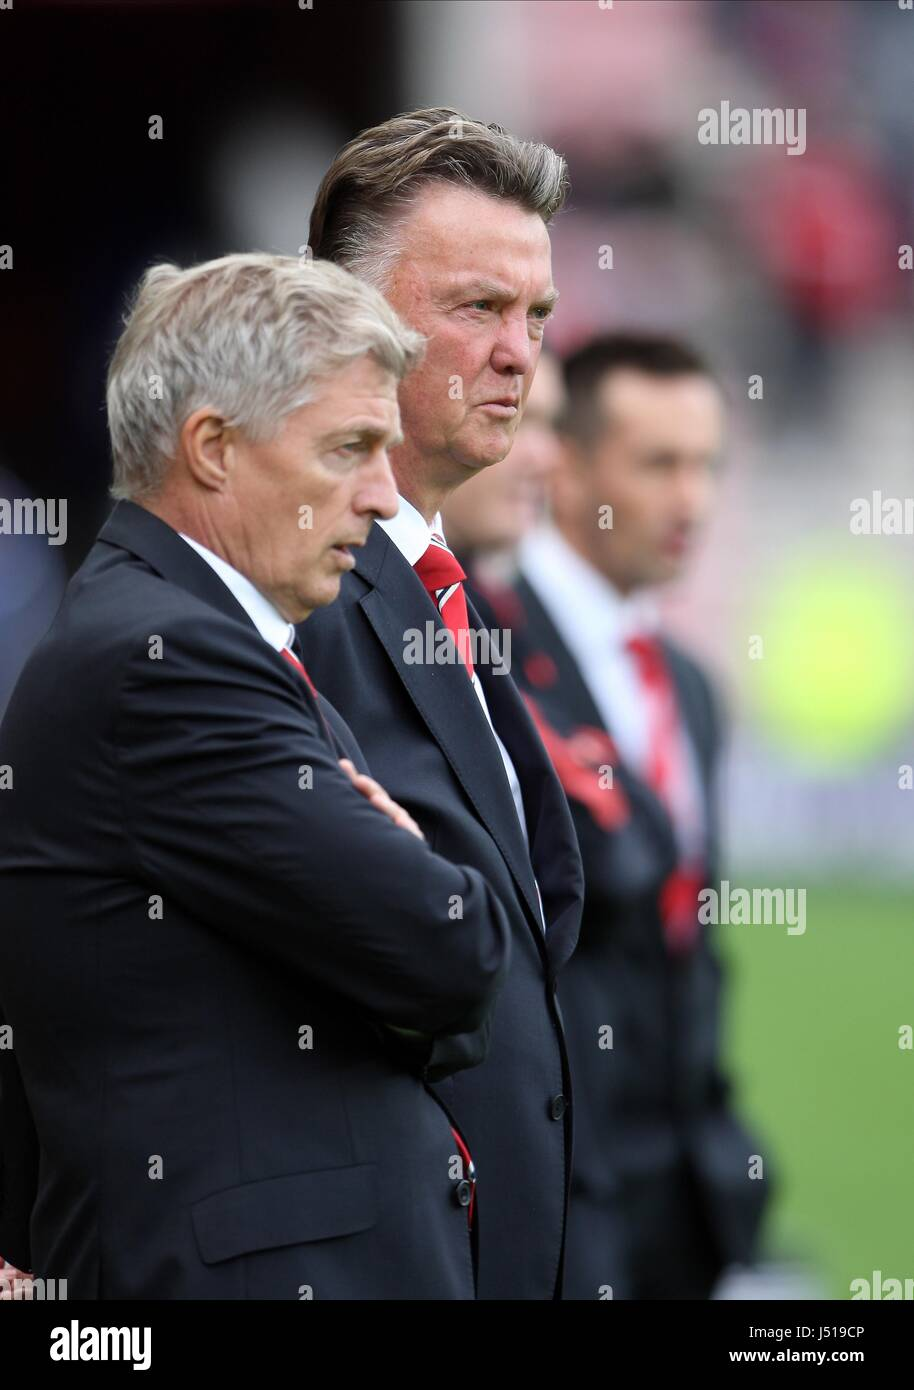 MARCEL BOUT LOUIS VAN GAAL MANCHESTER UNITED MANCHESTER UNITED ASSISTANT CO STADIUM OF LIGHT SUNDERLAND ENGLAND - Stock Image